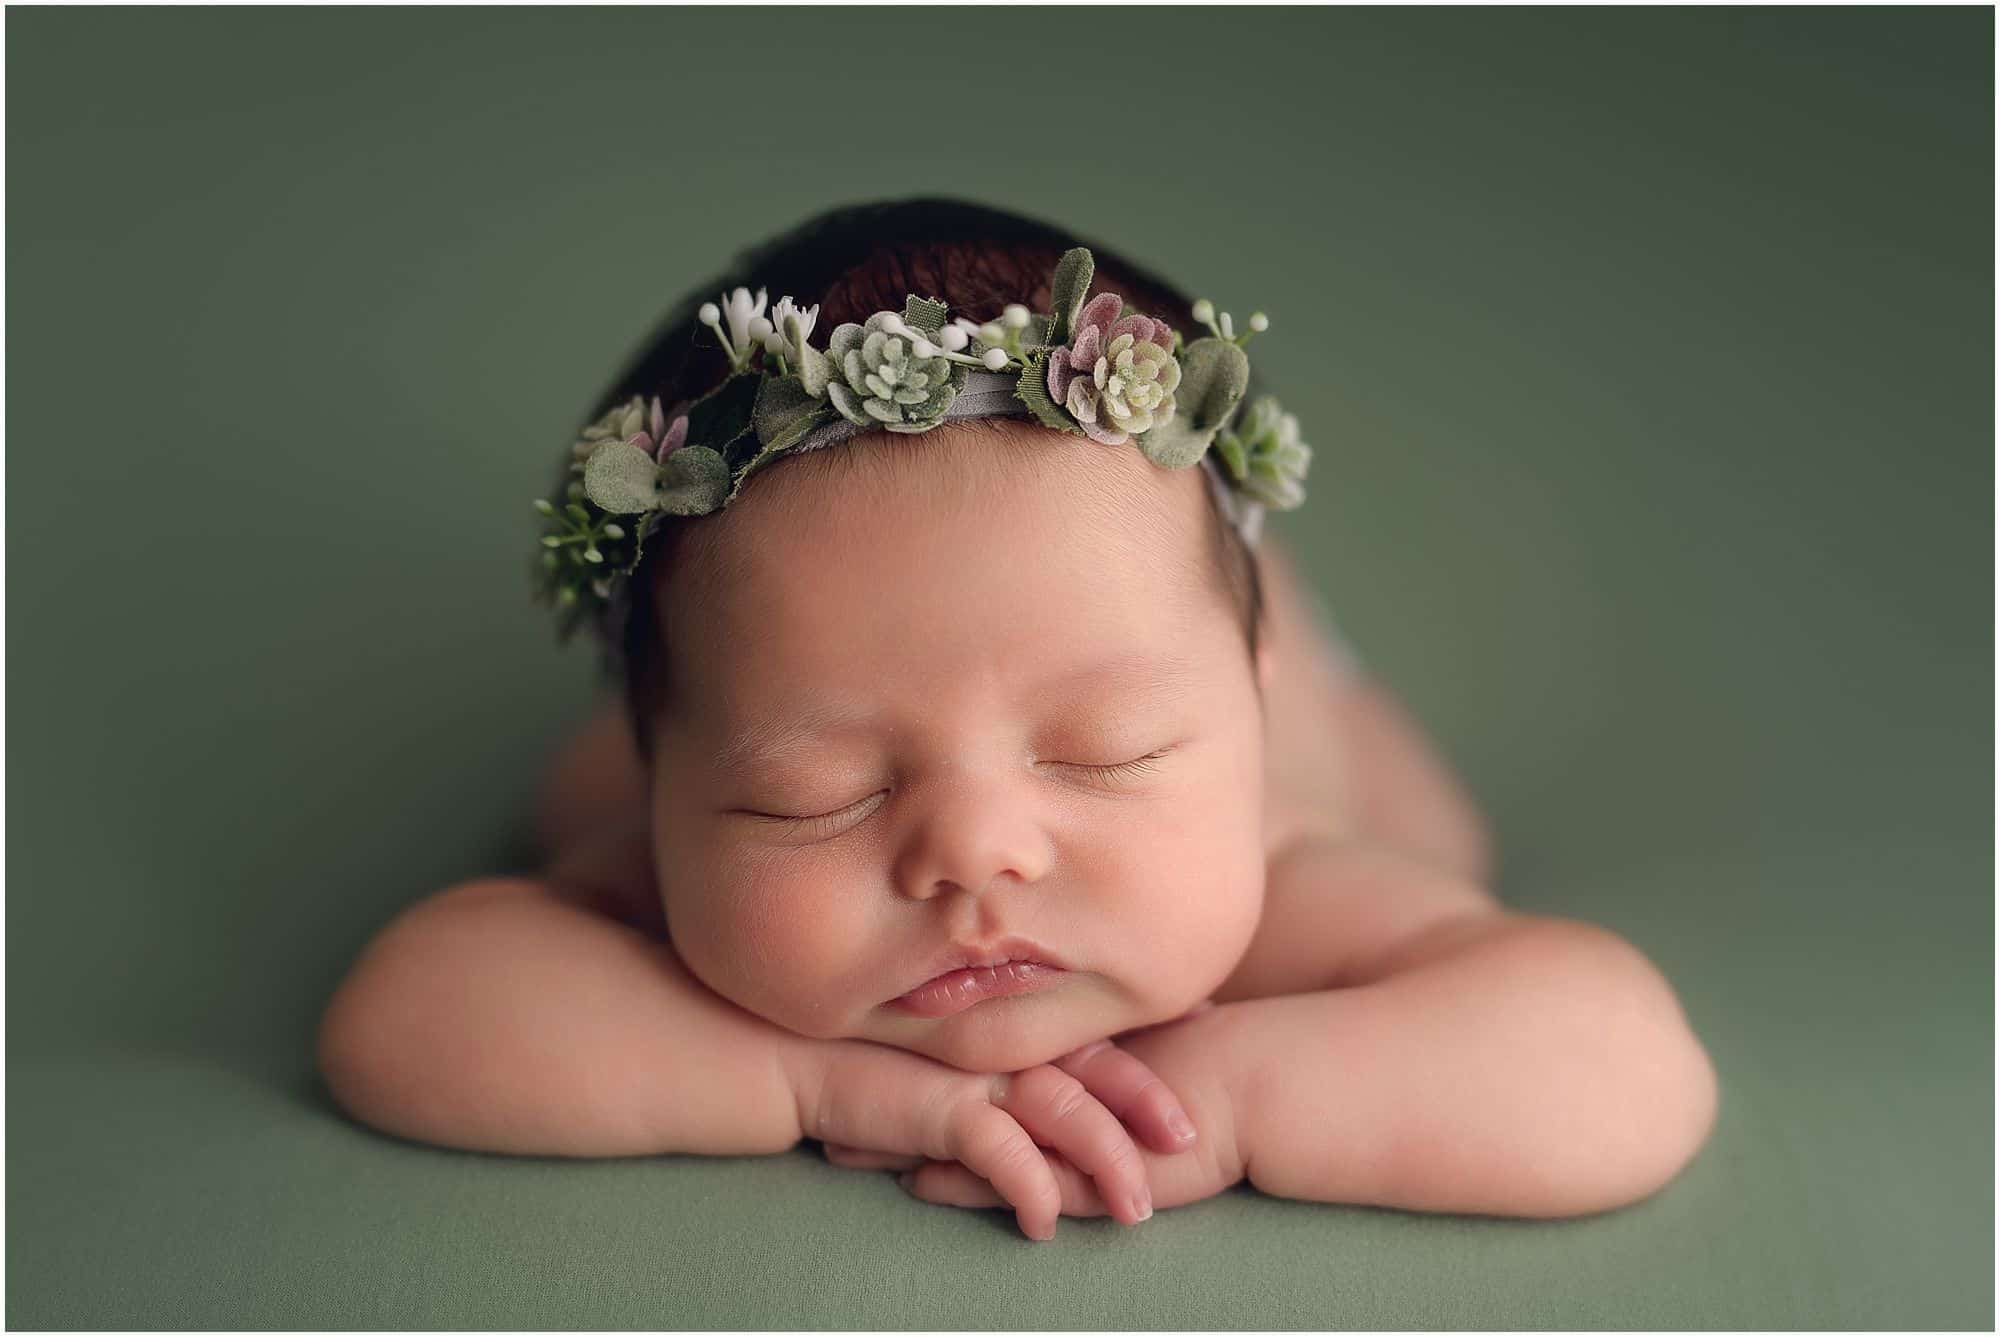 cincinnati newborn photographer Samantha sinchek captures beautiful sleeping baby girl on green